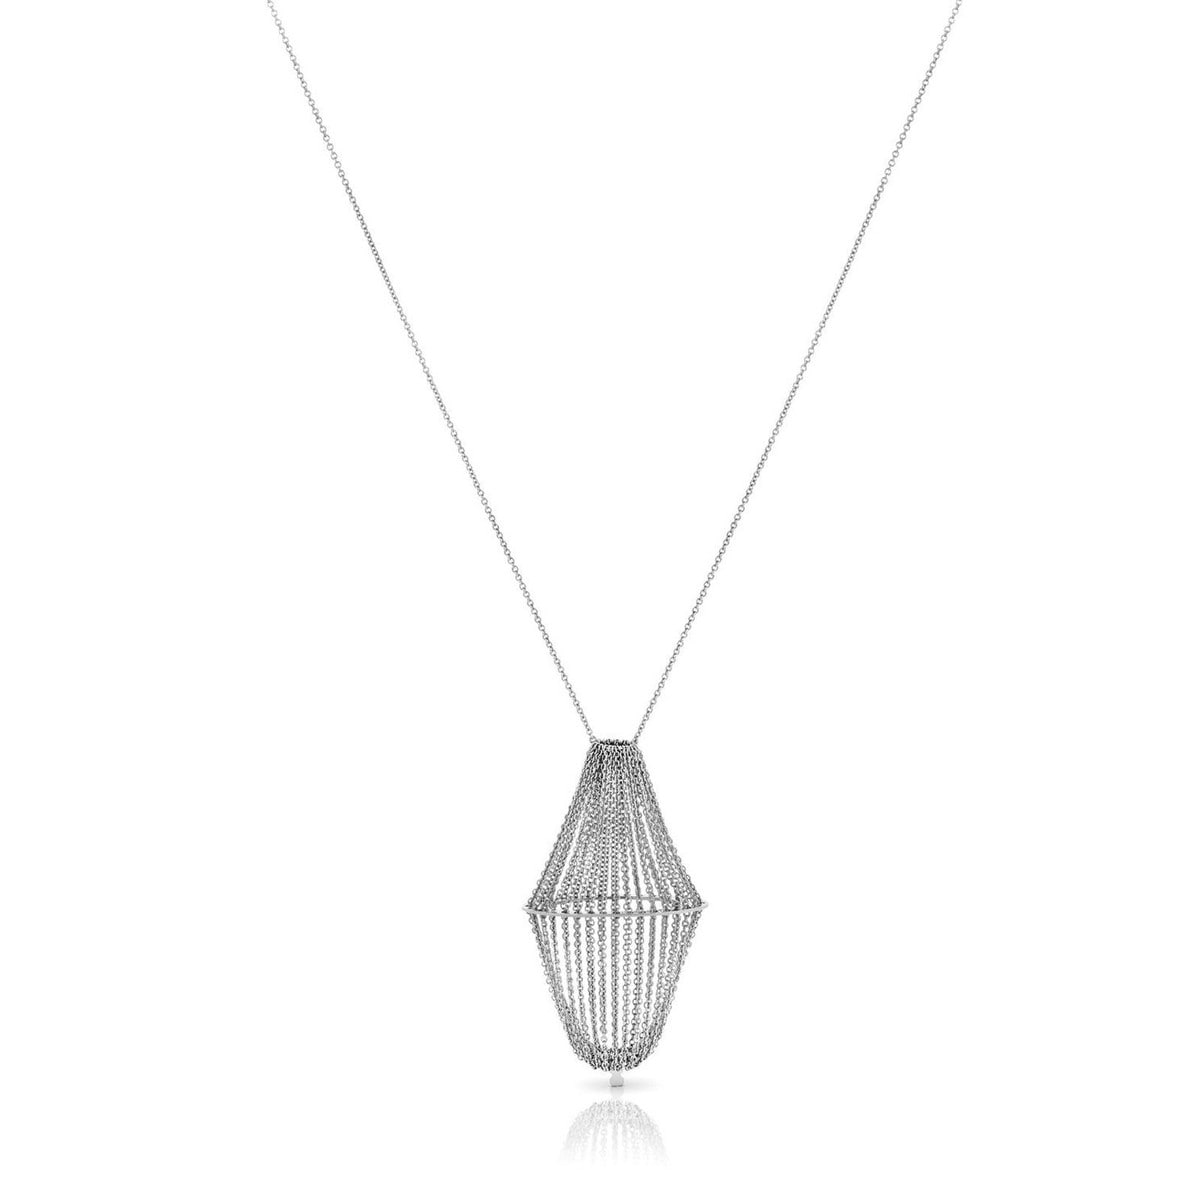 Silver Tesoro Necklace